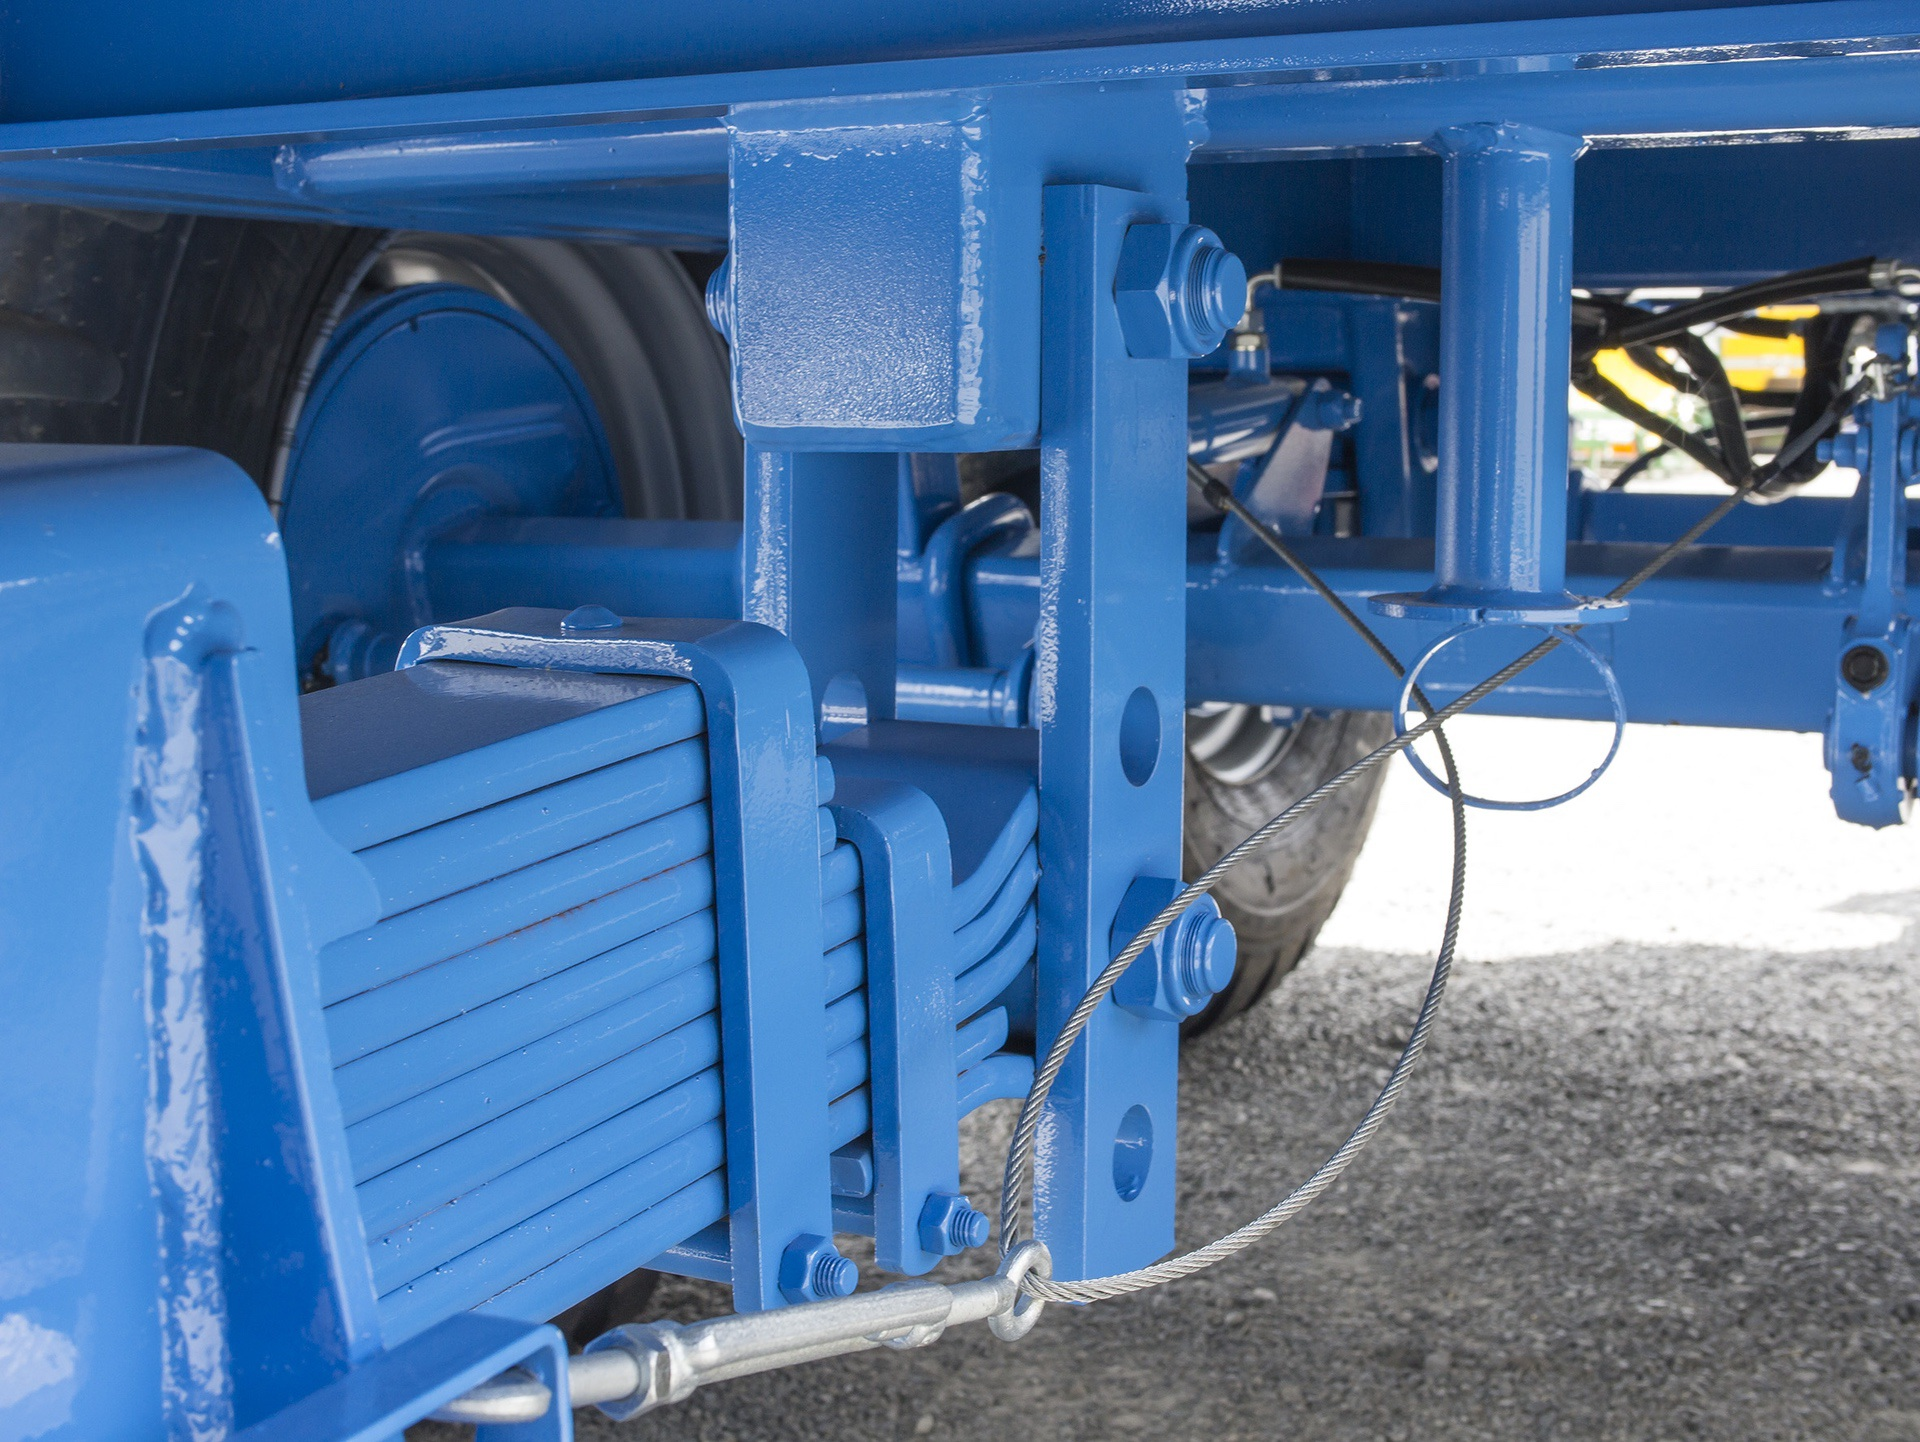 Pre-tensioned drawbar suspension for smoother travelling